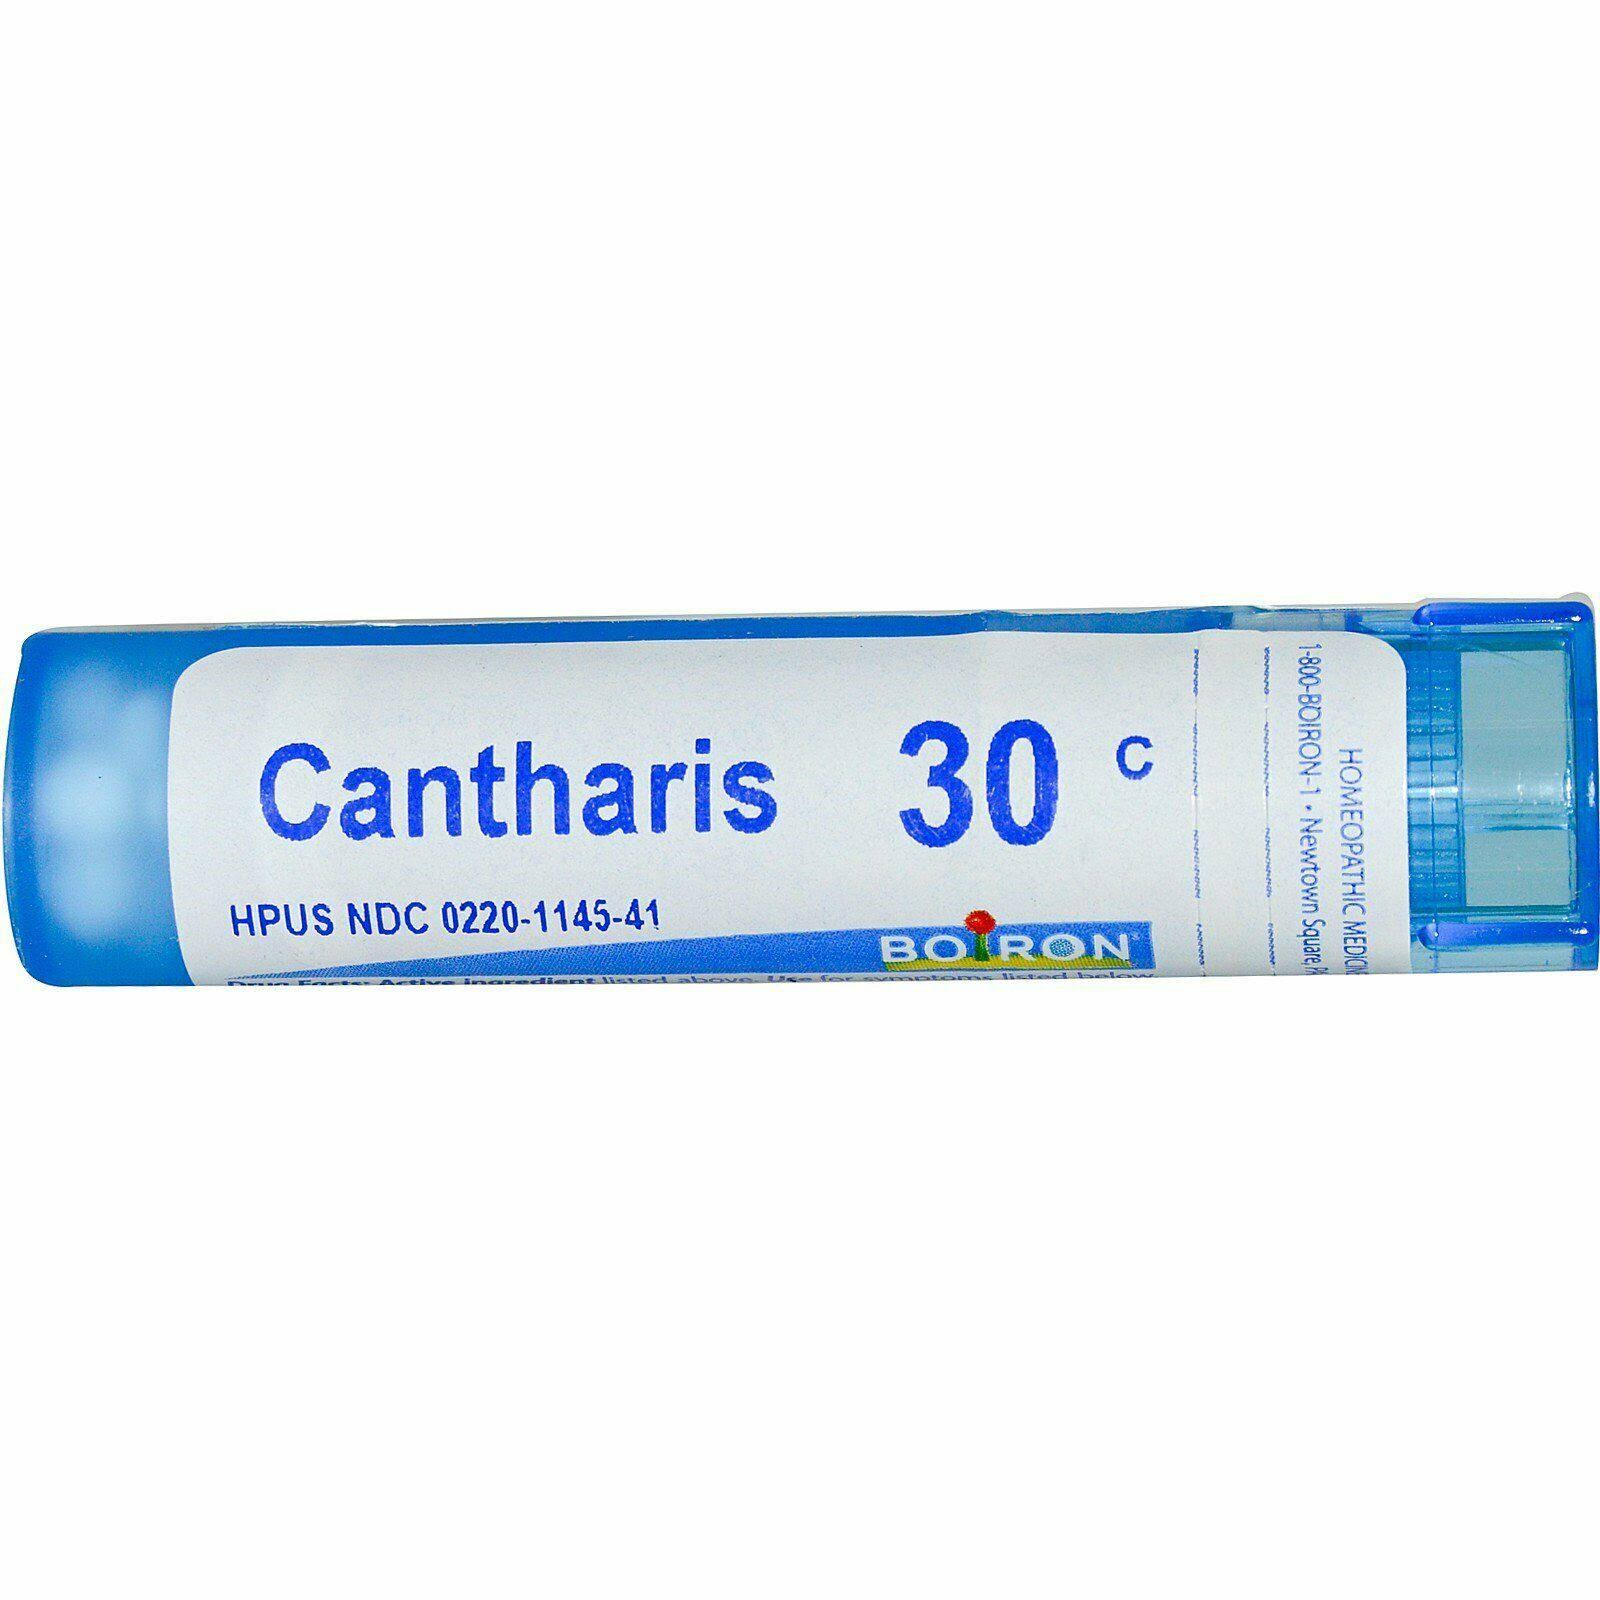 Boiron Cantharis 30C Homeopathic Medicine - 80 Pellets